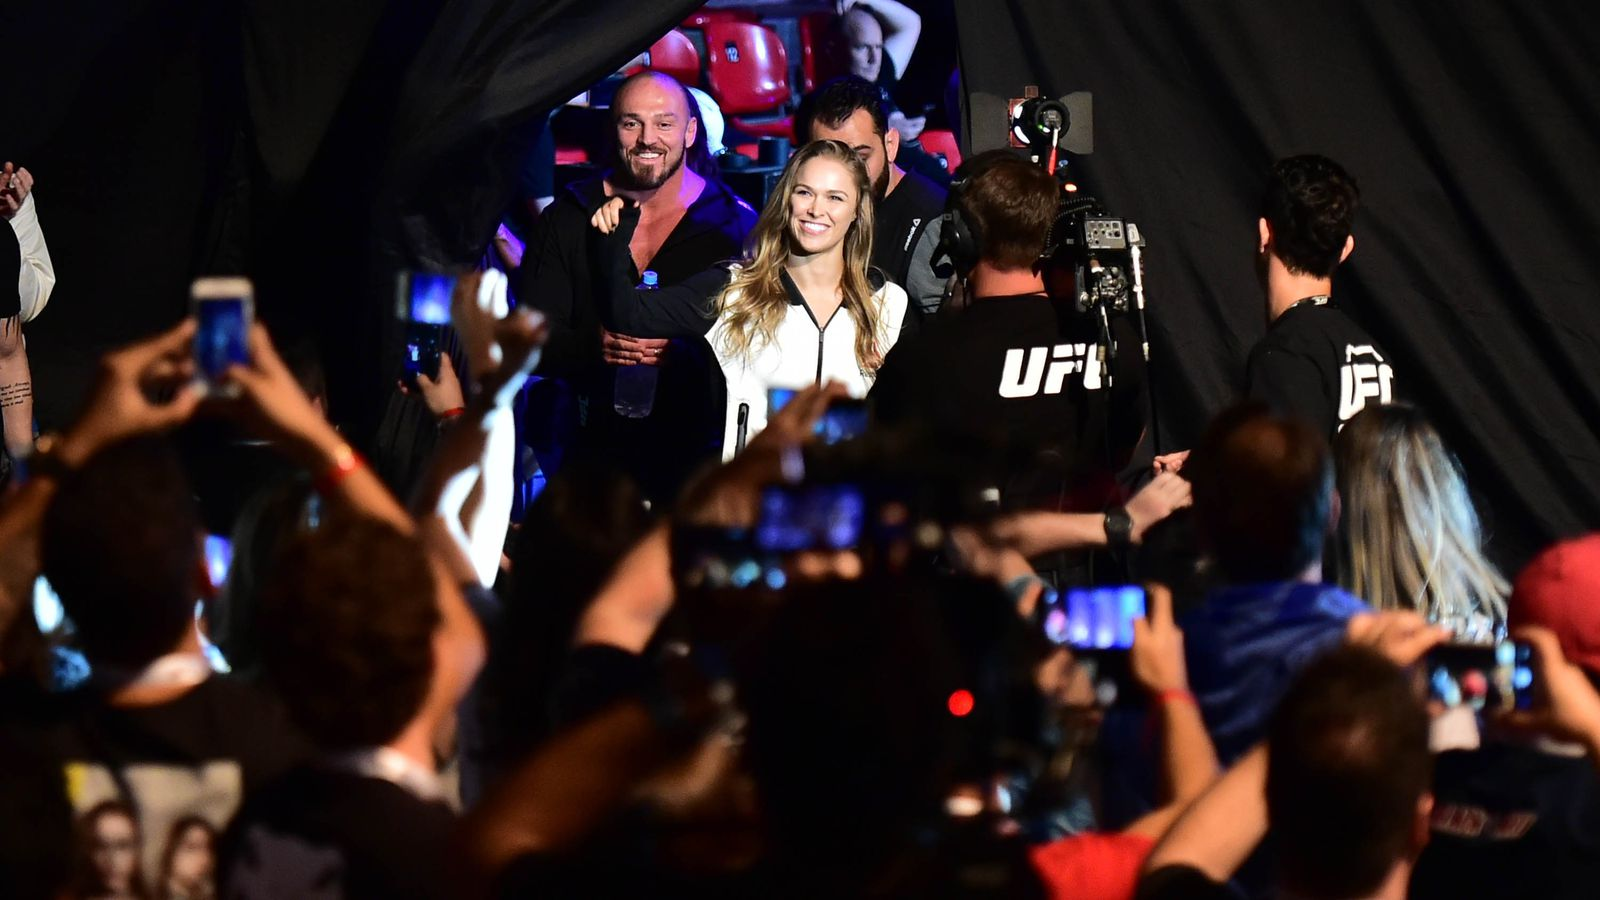 Ufc 190 rousey vs correia results mma fighting